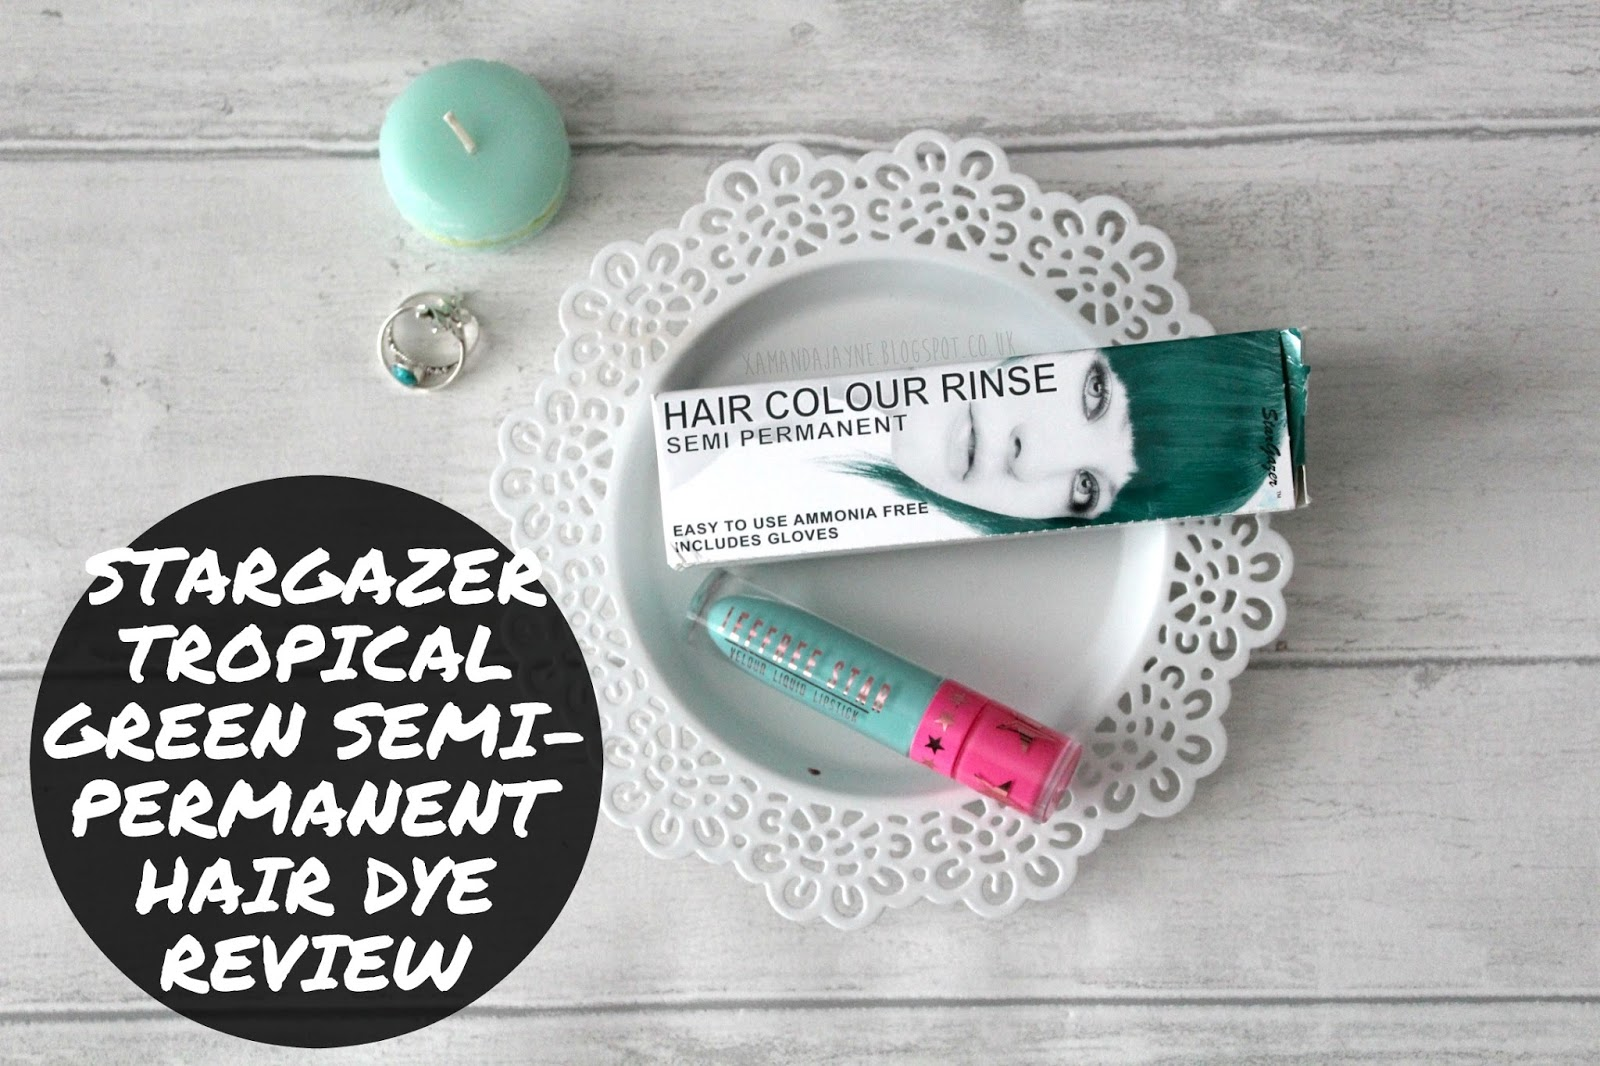 stargazer tropical green semi-permanent hair dye, review, swatches, unbleached hair